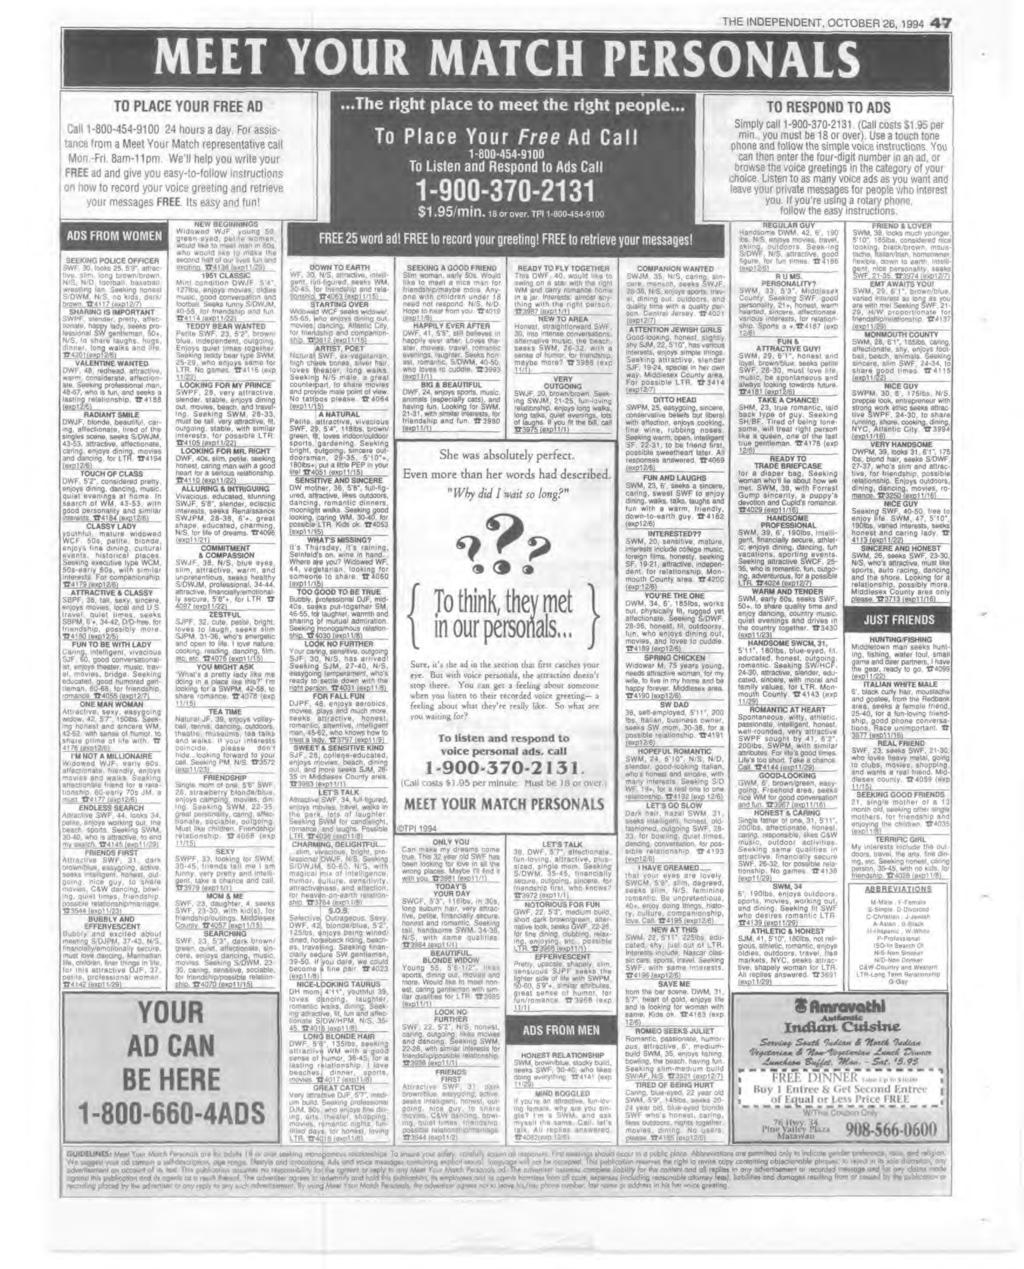 THE NDEPENDENT, OCTOBER 26, 1994 4 7 MEET YOUR MATCH PERSONALS TO PLACE YOUR FREE AD Call 1-800-454-9100 24 hours a day. For assistance from a Meet Your Match representative call Mon.-Fri. 8am-11pm.